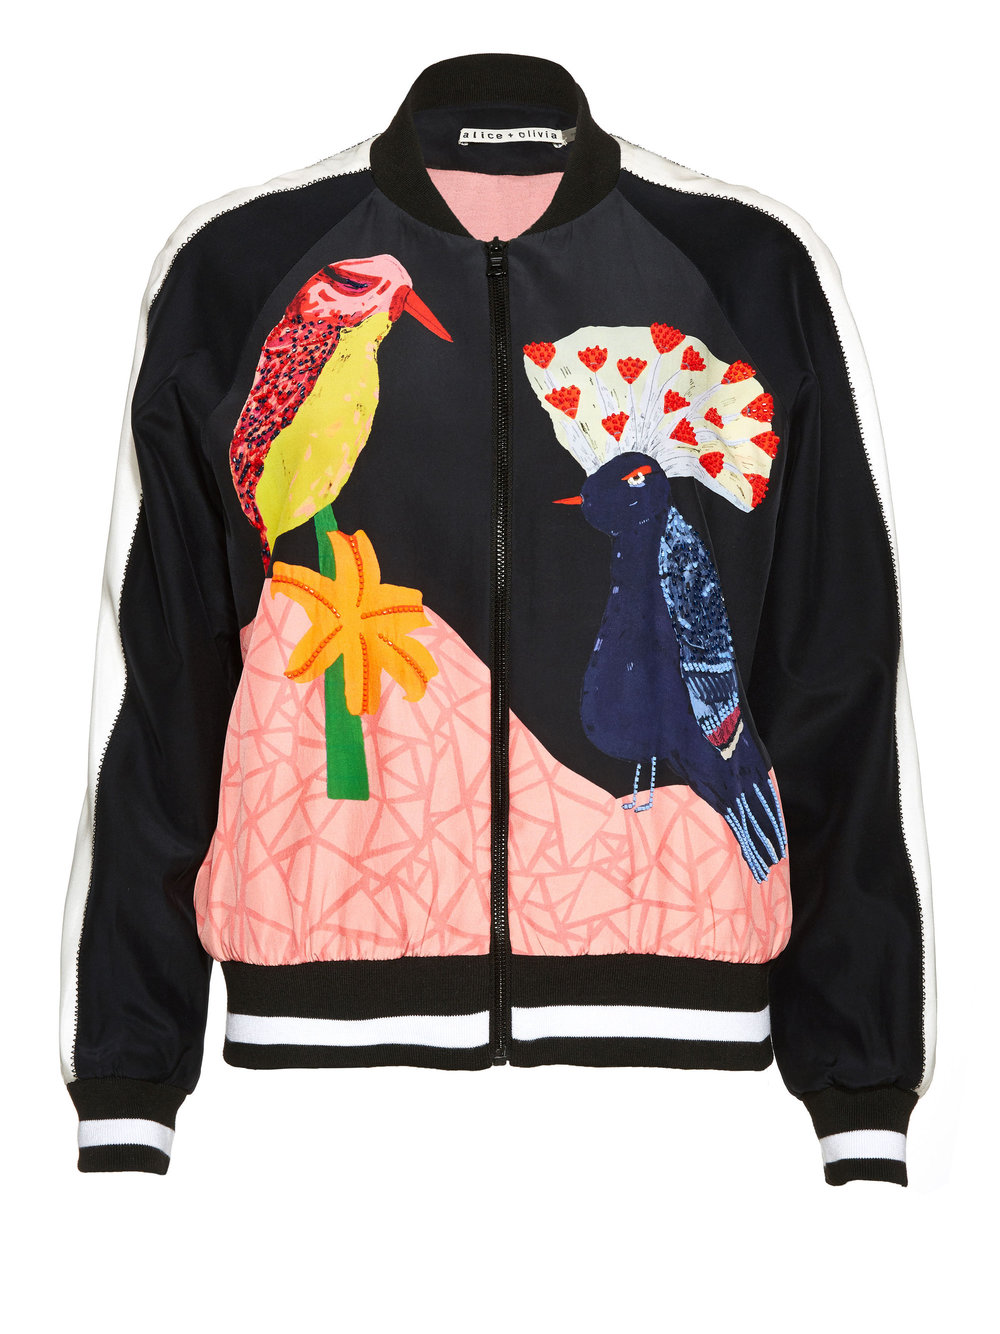 alice_and_olivia_FELISAZIPPERBOMBER_MULTI_888819193249_PRODUCT_05--1406249095.jpg